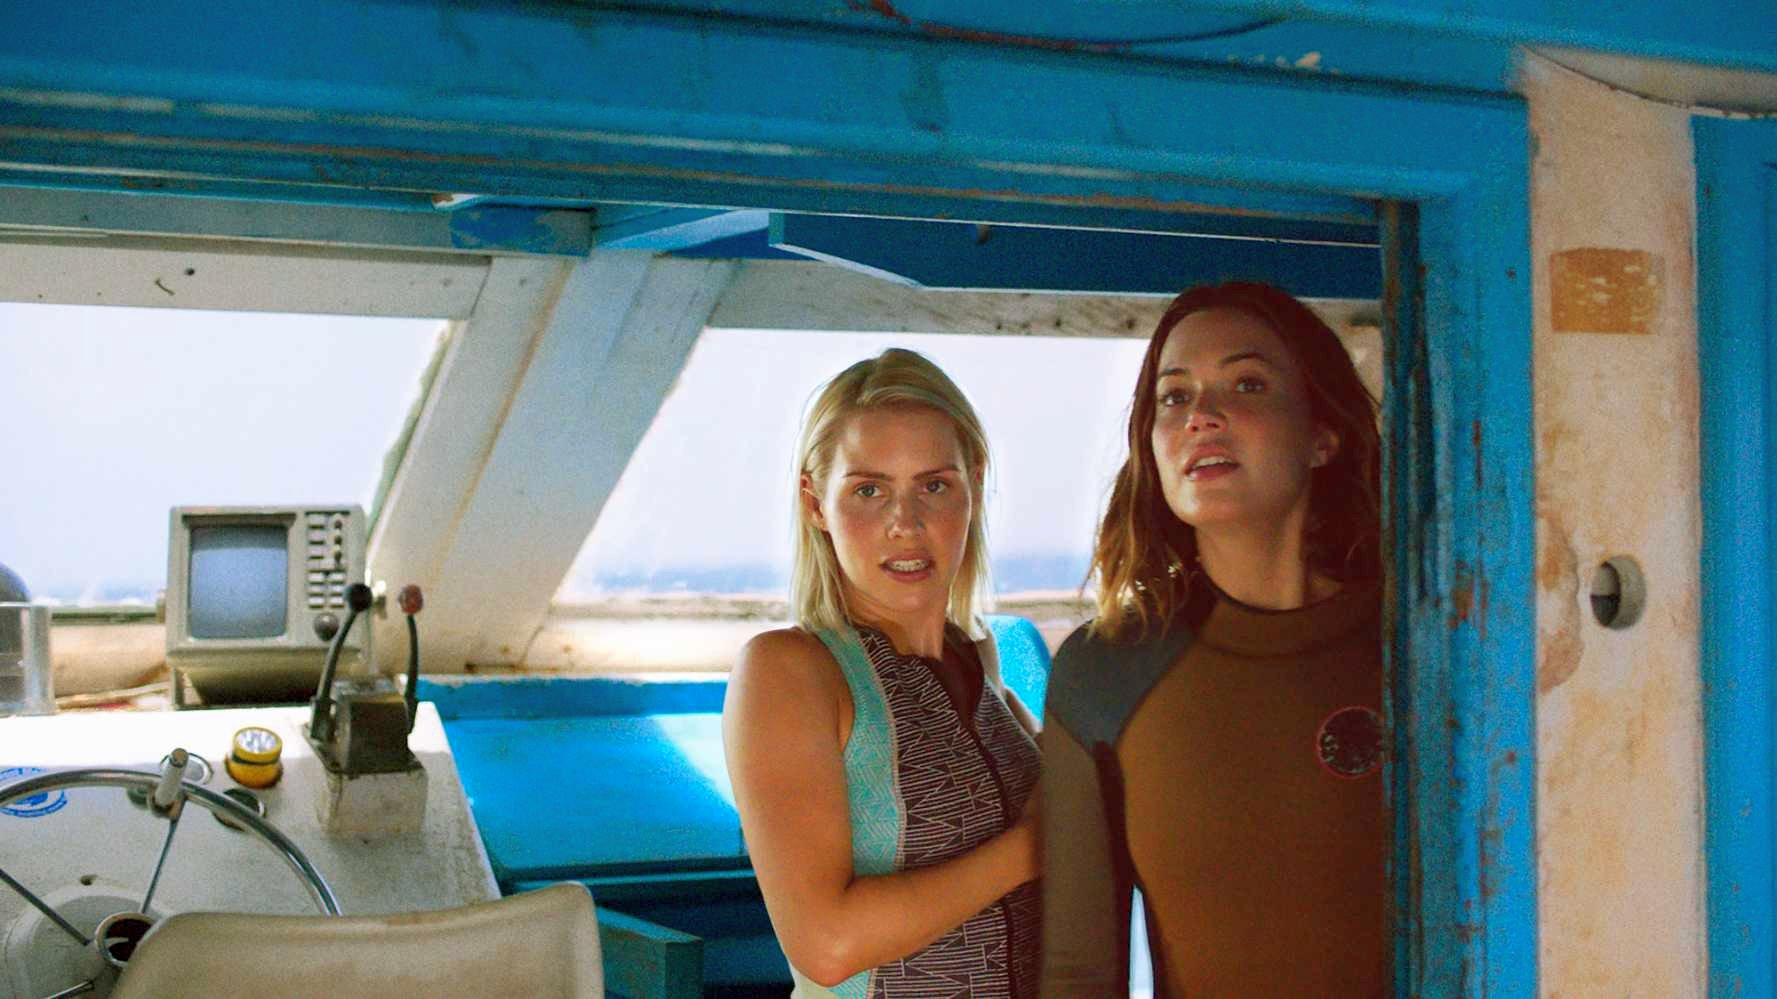 47 Meters Down Trailer Featuring Mandy Moore & Claire Holt